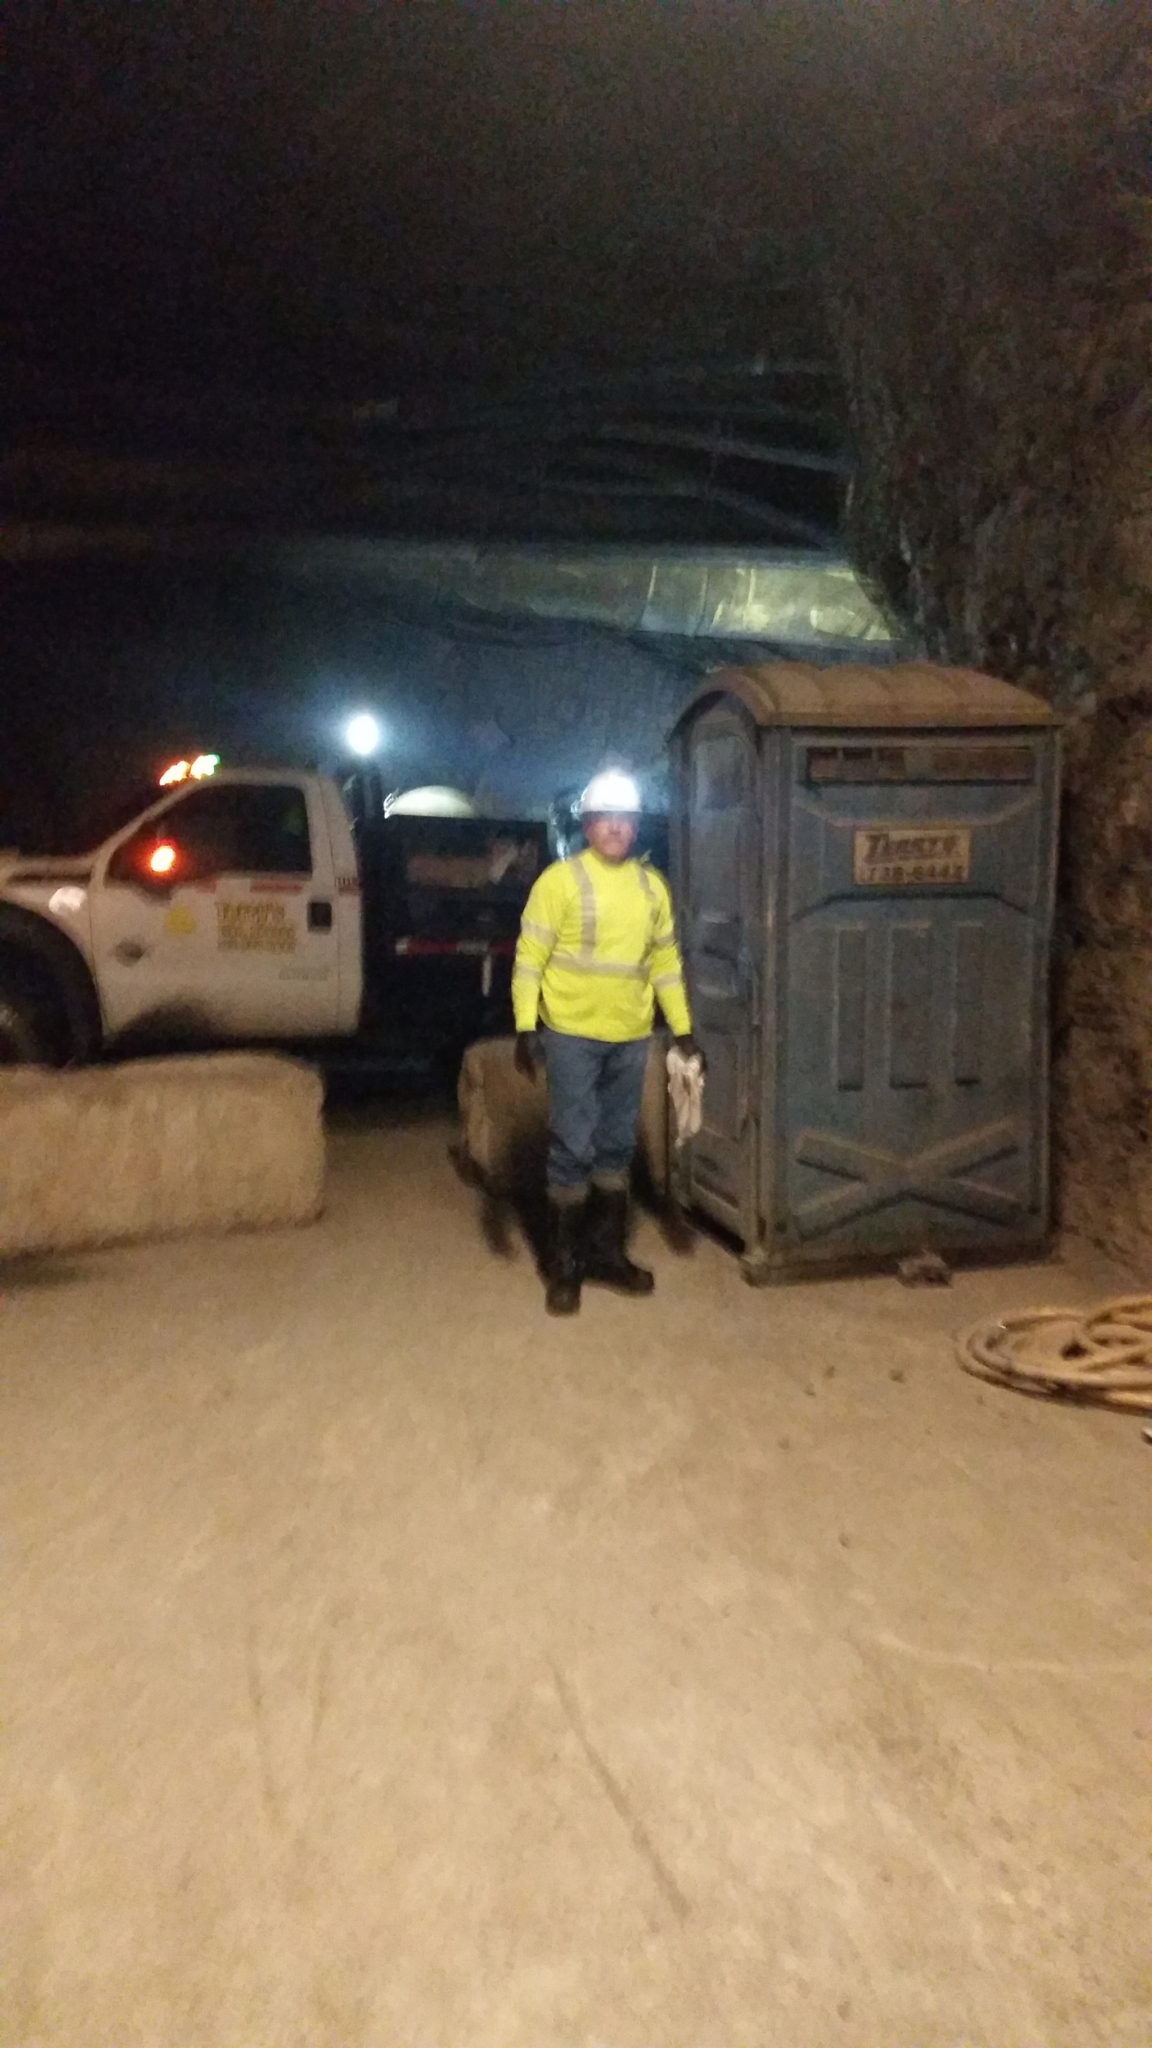 Domingo Garcia, the underground service technician, wears reflective clothing and a miner's lamp to illuminate units located 1,500 feet underground.